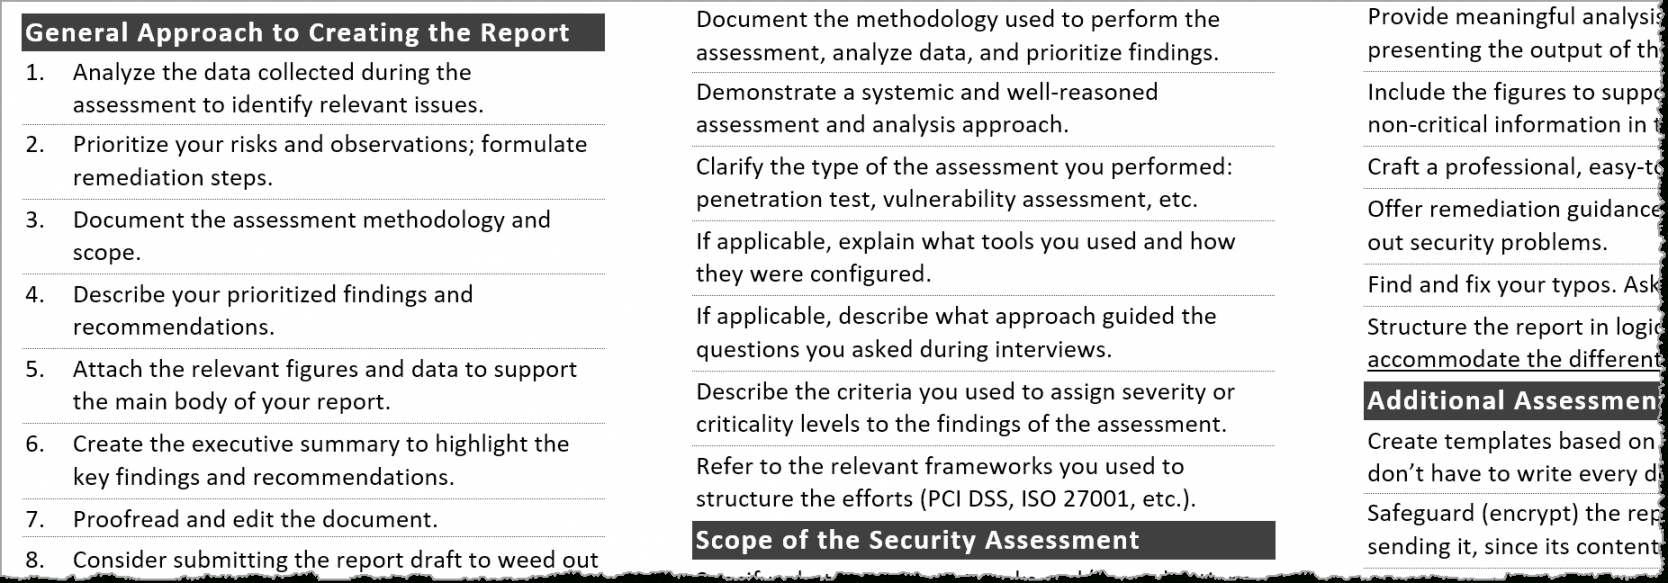 printable tips for creating a strong cybersecurity assessment report security risk analysis template for meaningful use doc